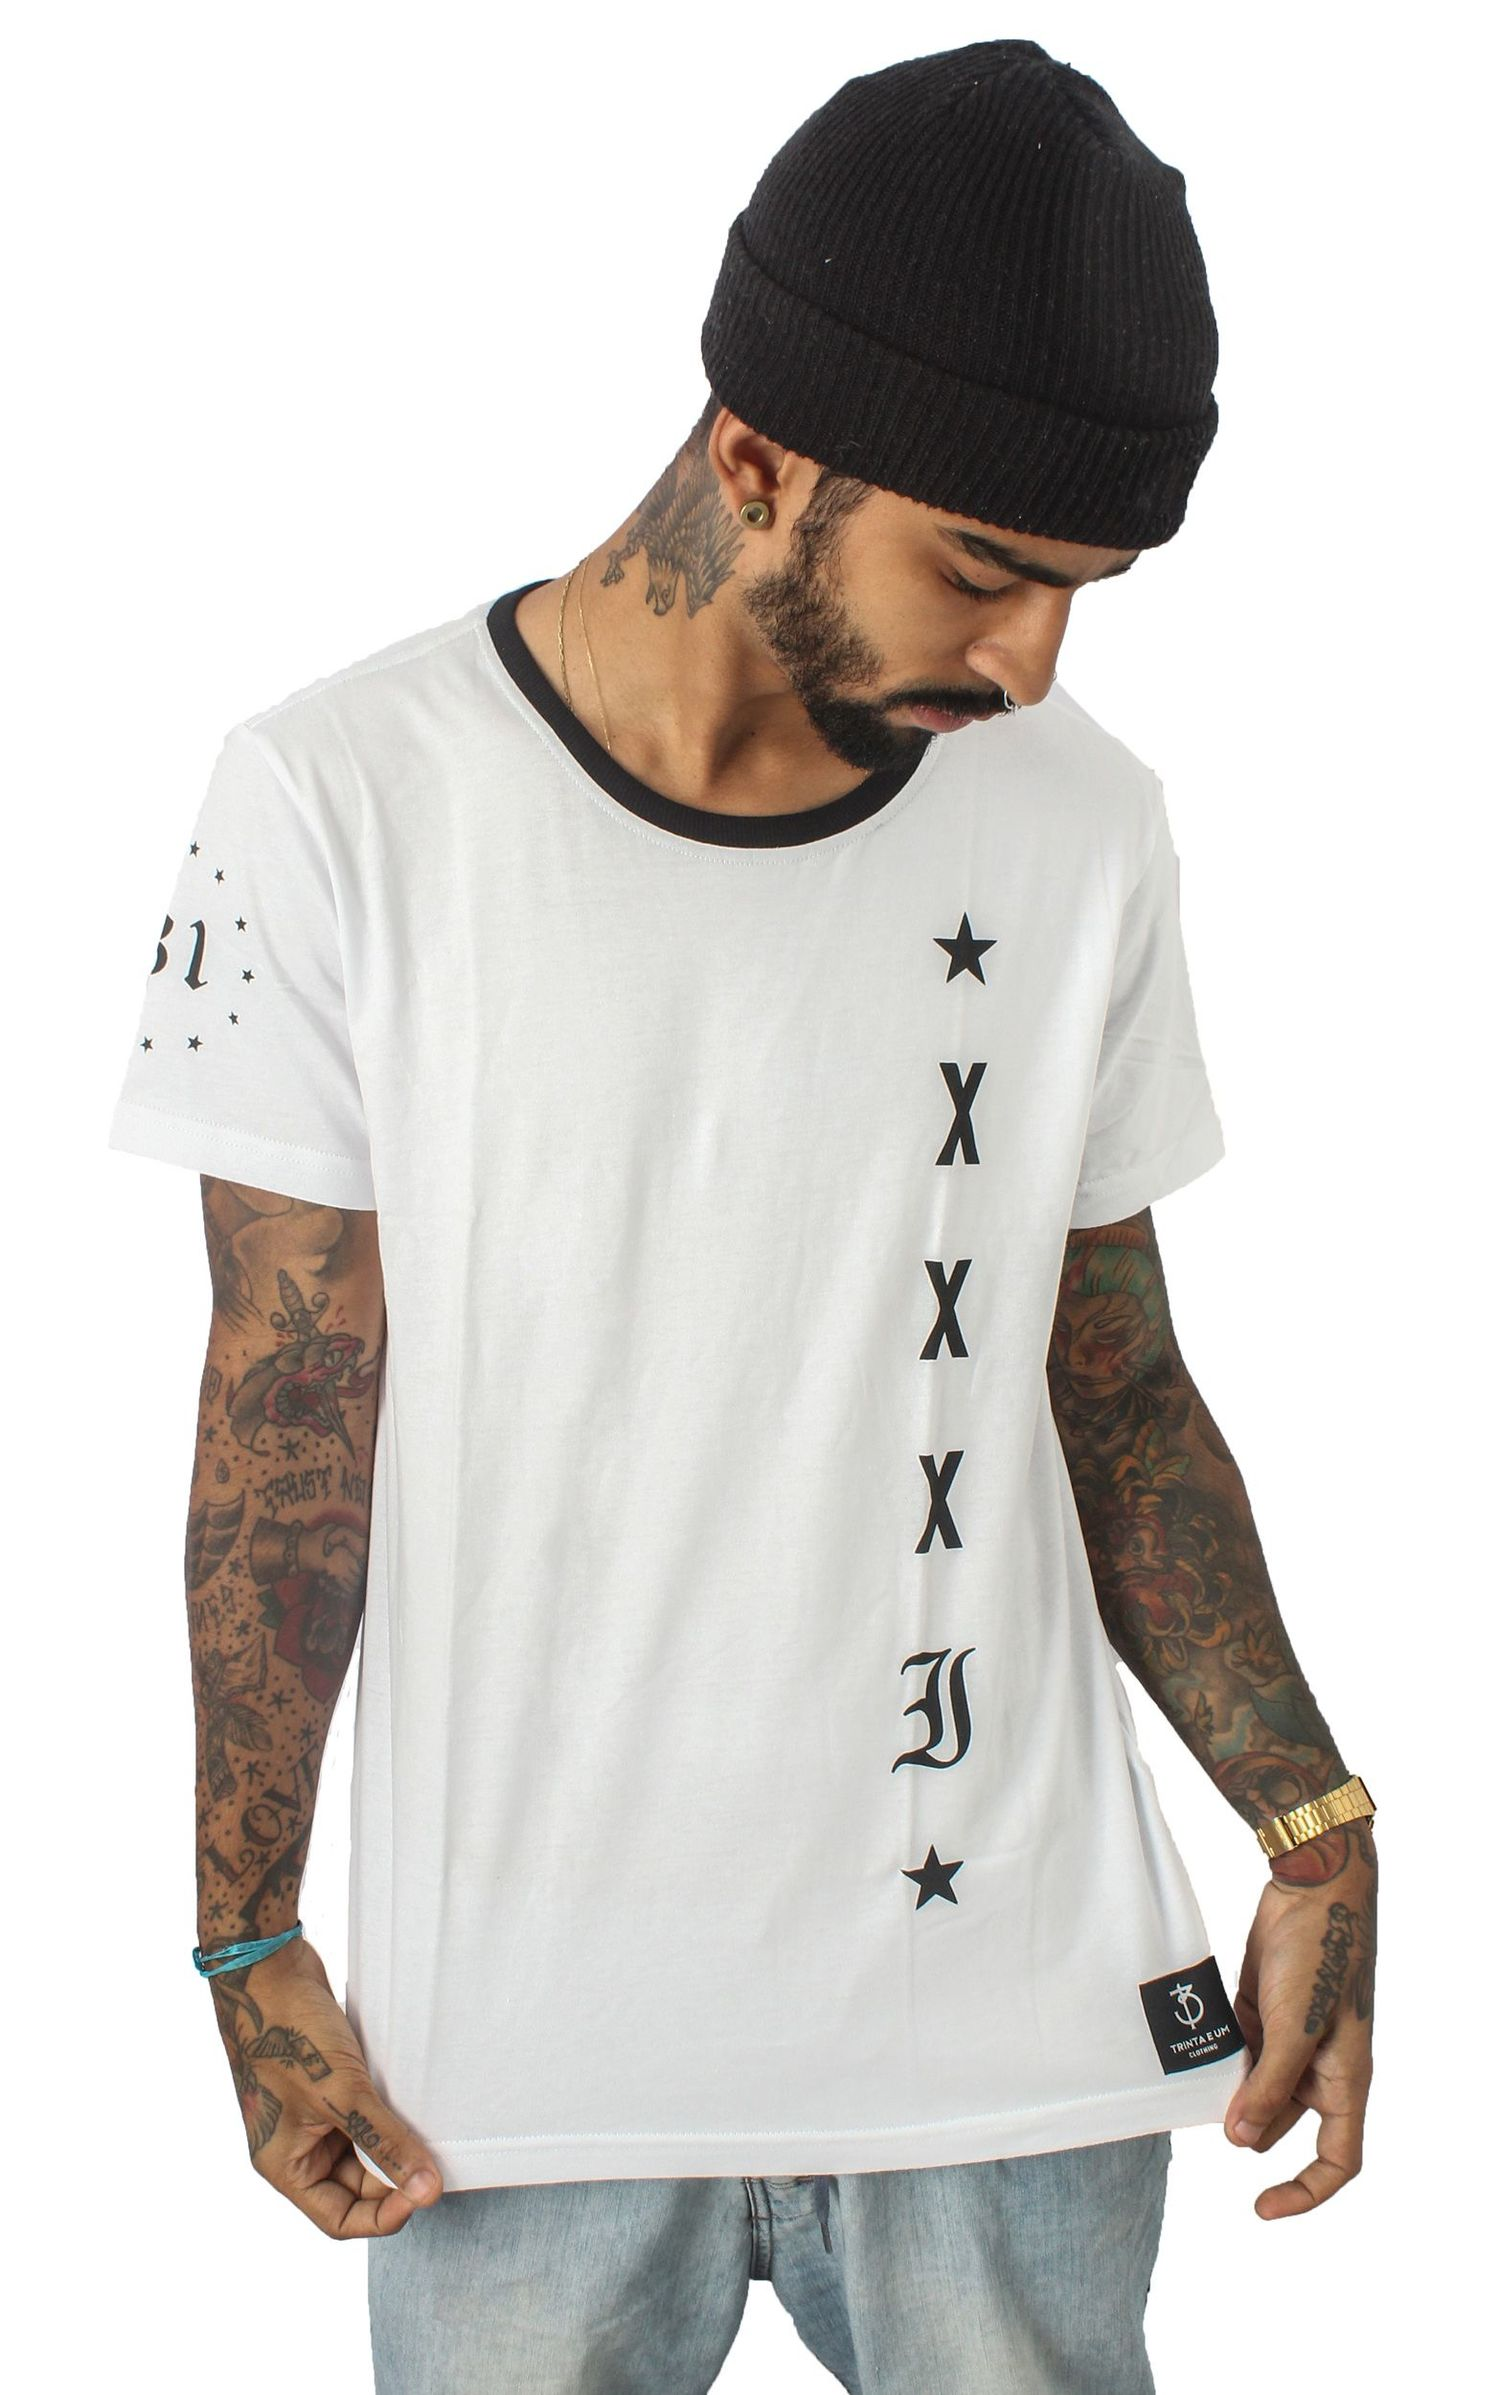 Camiseta XXXI GOTHIC - 31 CLOTHING